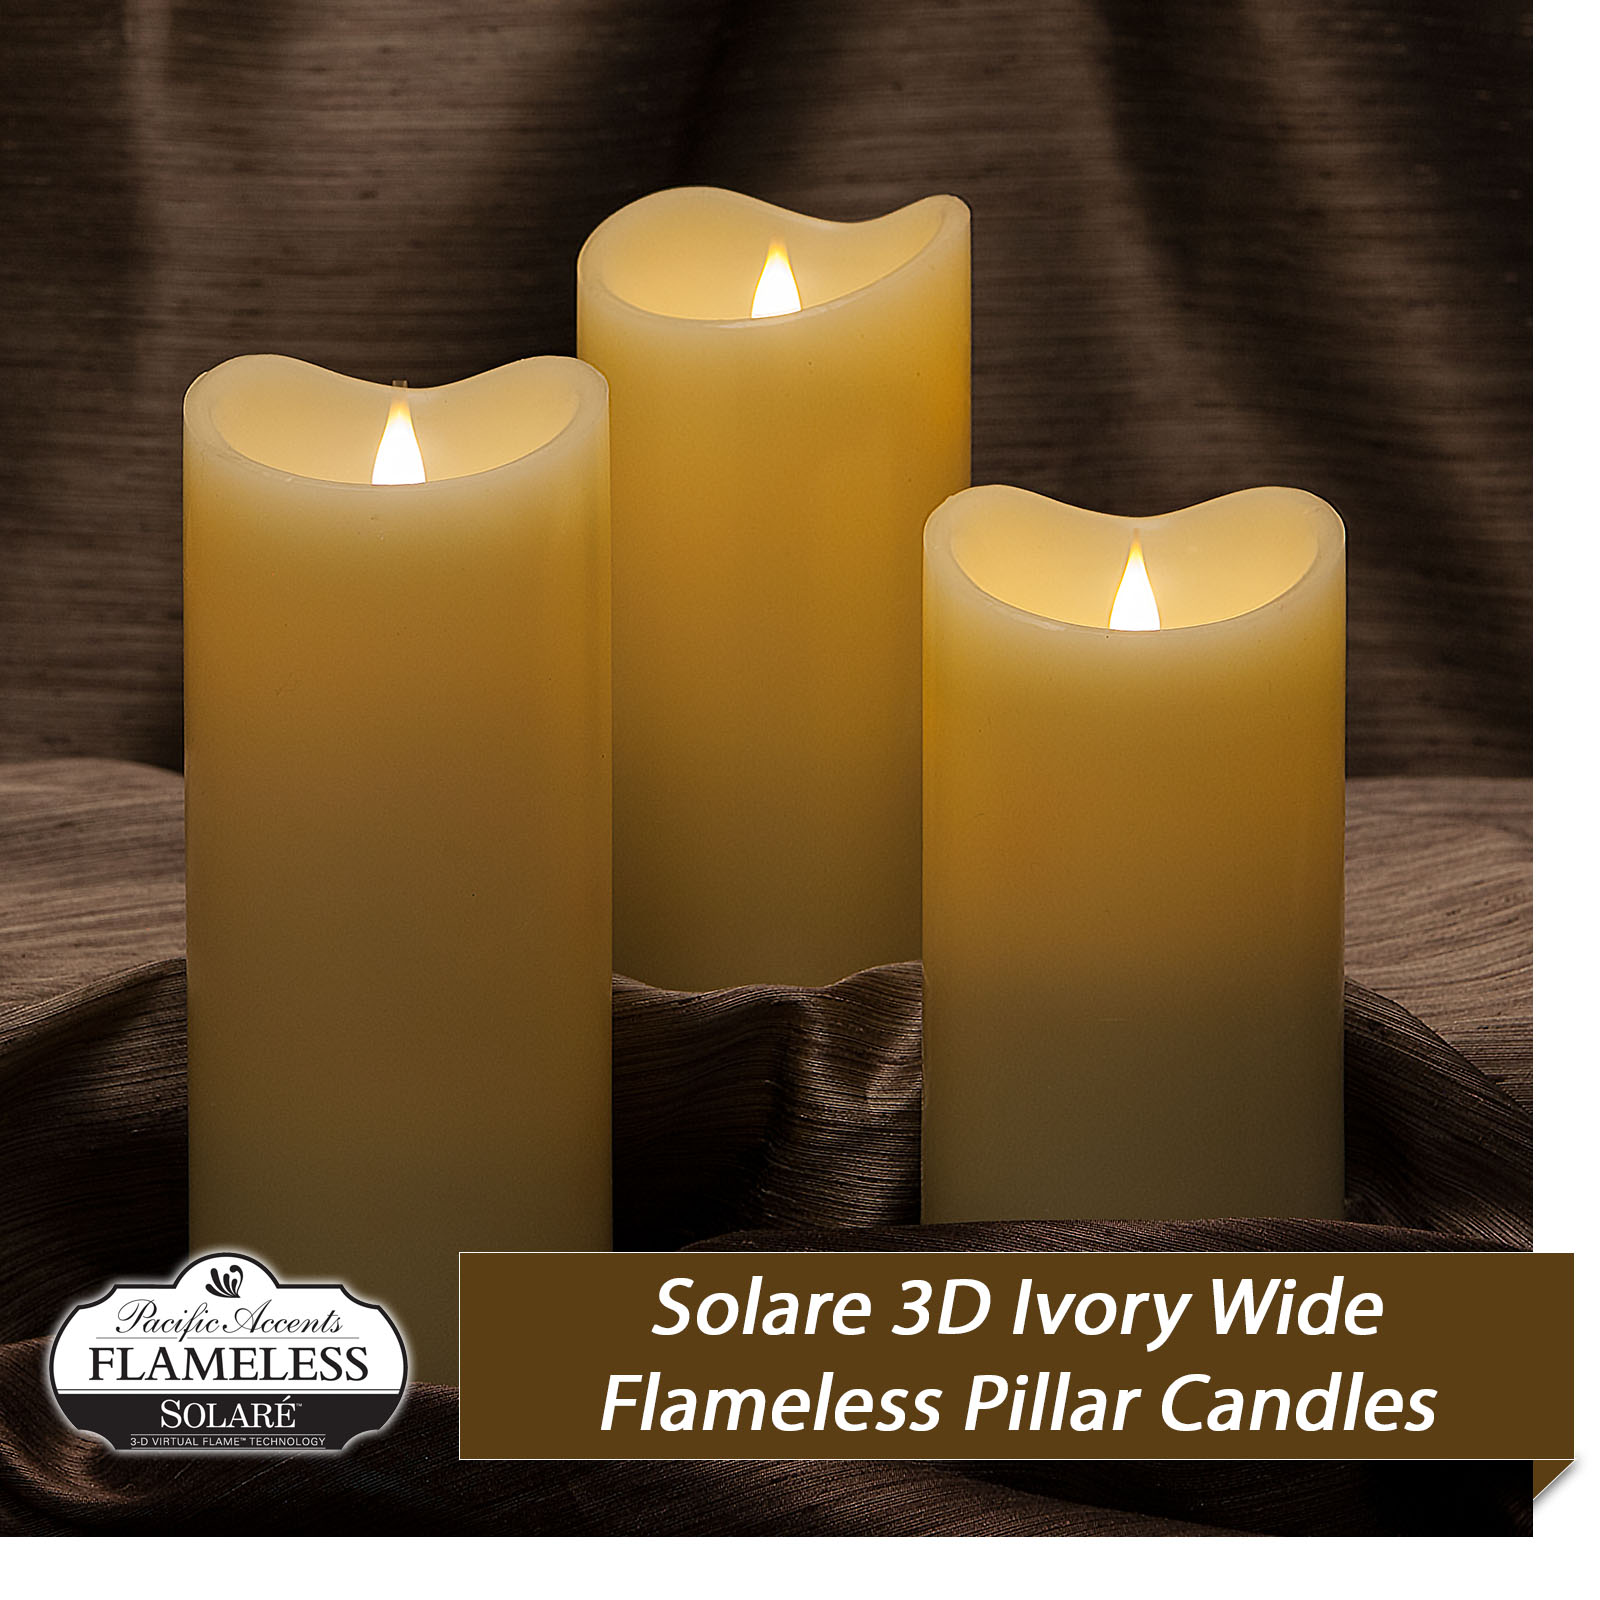 Solare Wide Flameless candles with 3D Flame